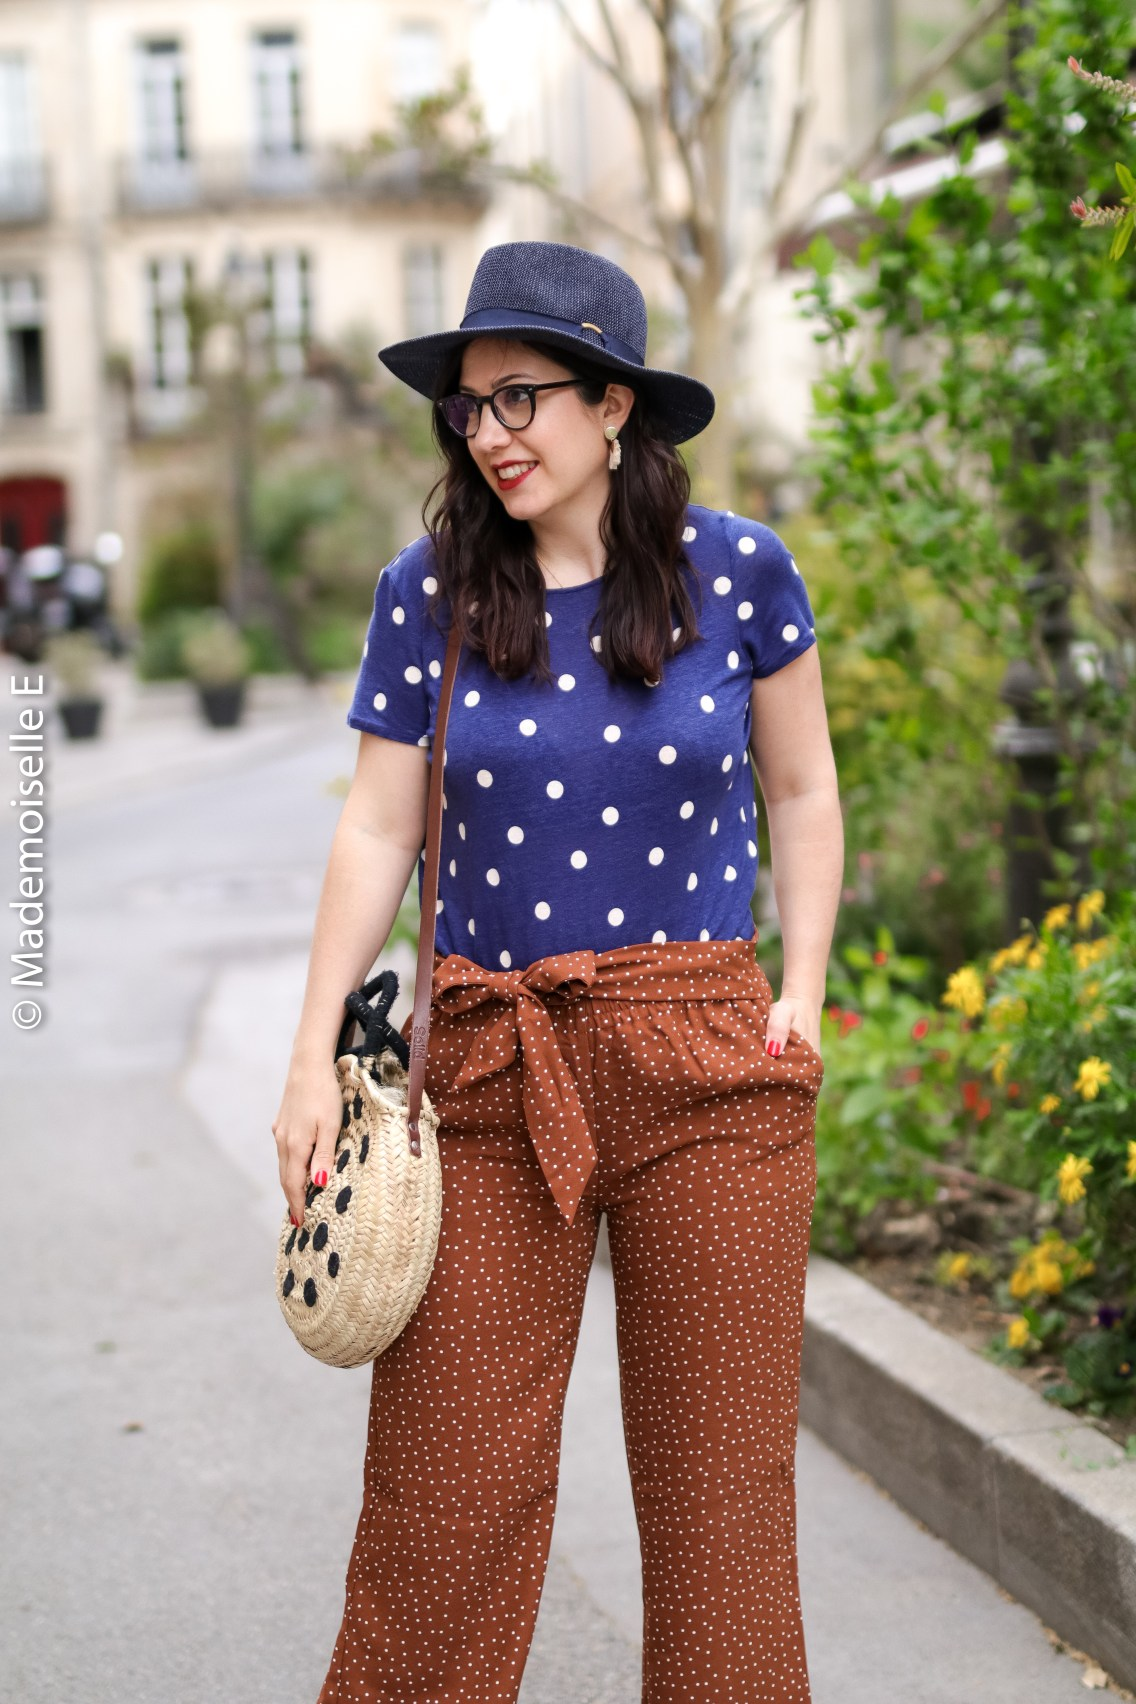 blog-mode-femme-total-look-a-pois-23-mademoiselle-e